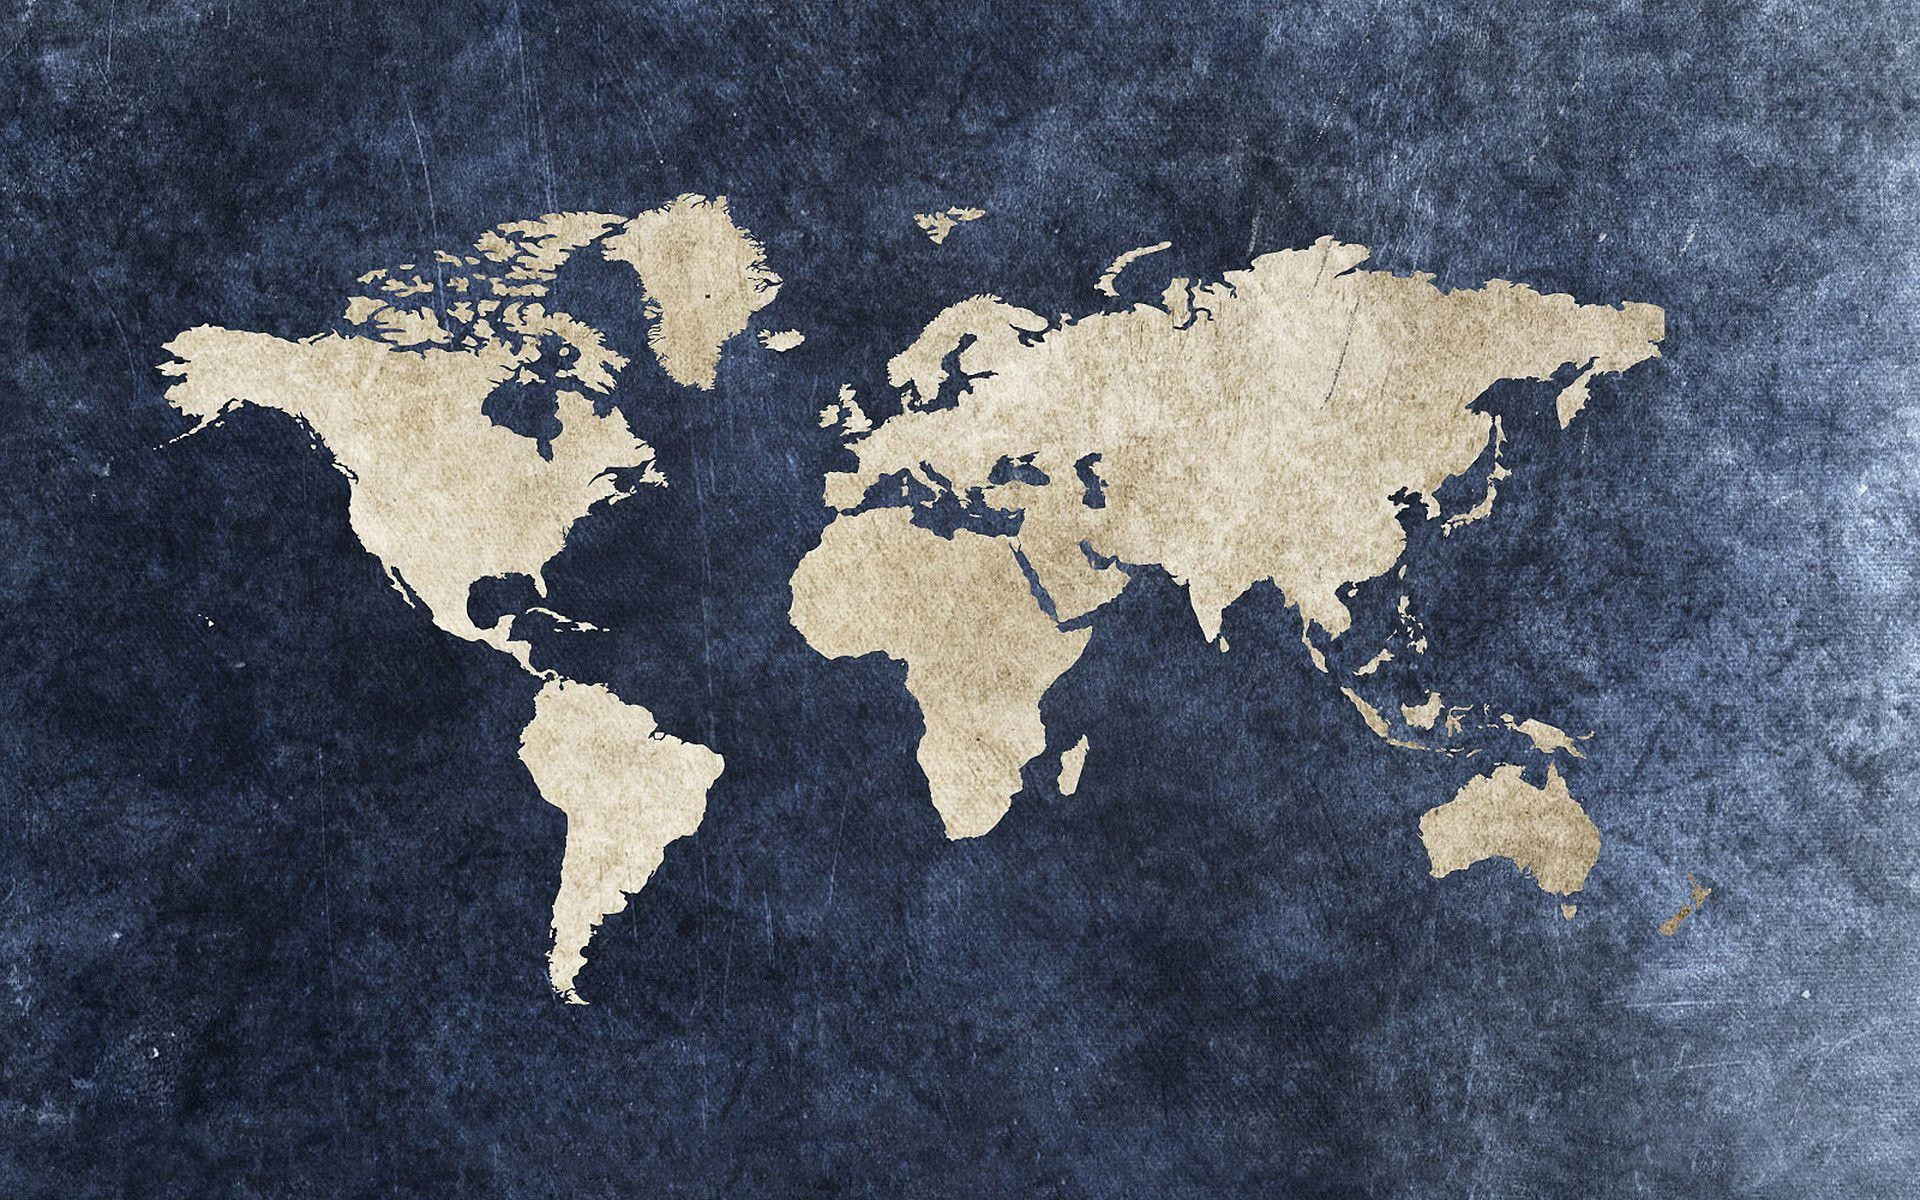 World map desktop wallpaper 54 images 1920x1200 world map wallpapers full hd wallpaper search gumiabroncs Image collections